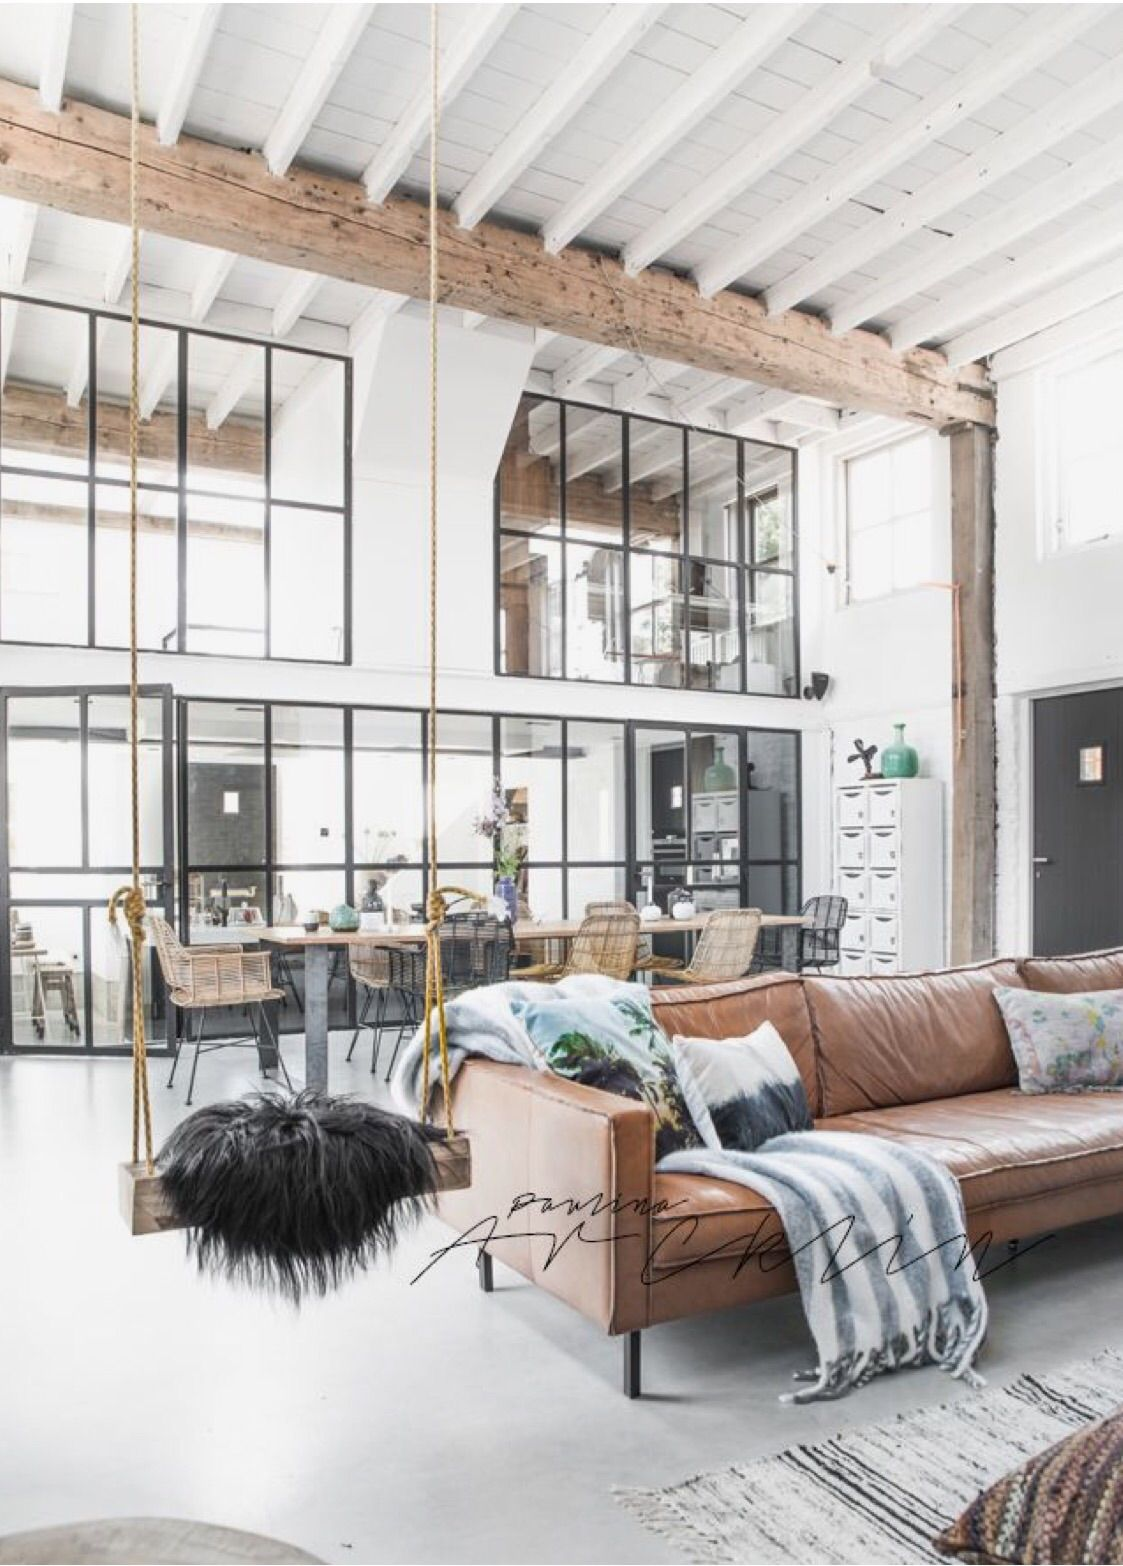 Tan leather sofa large interior space high ceilings | EPIPLA ...